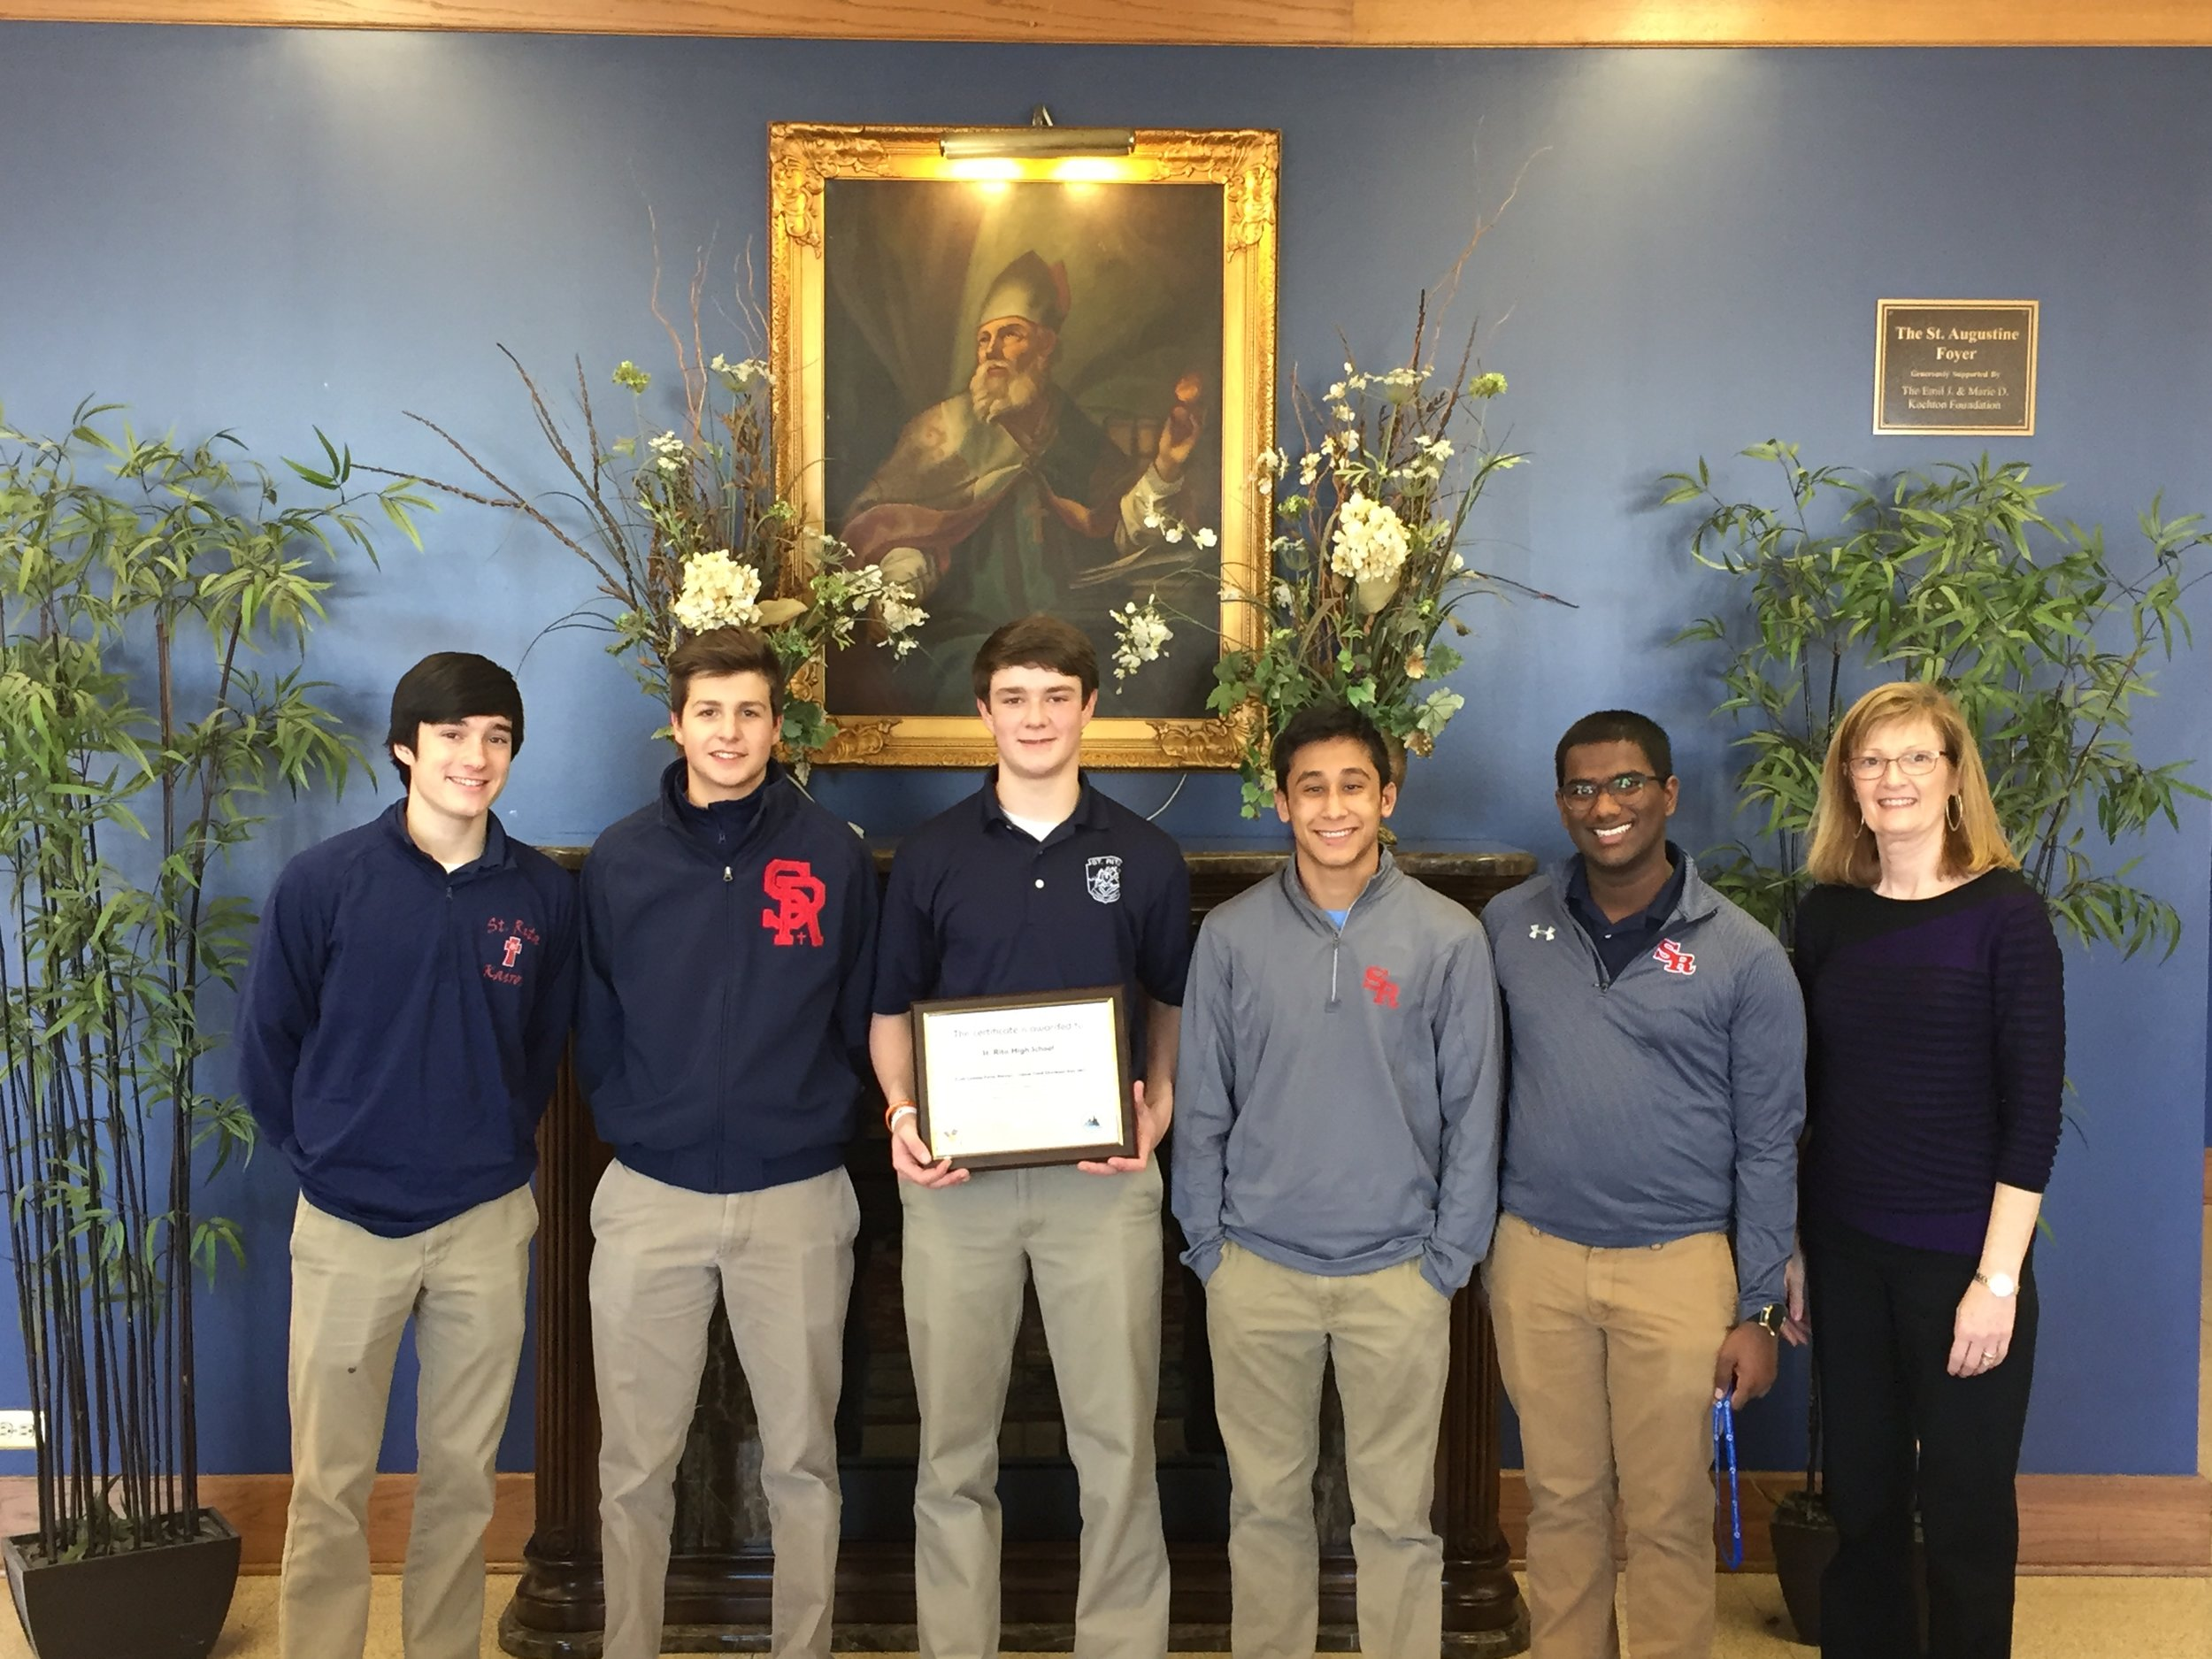 Pictured: L to R: Brian Murphy '17 (St. John Fisher), Nino Rizzi '17 (Infant Jesus of Prague), Charlie Coughlin '18 (Christ the King), Orlando Rojas '17 (St. Benedict), Victor Martinez '18 (St. Barnabas),Diane Merrion. Not Pictured: Nick Durham '17 (Central Jr. High)